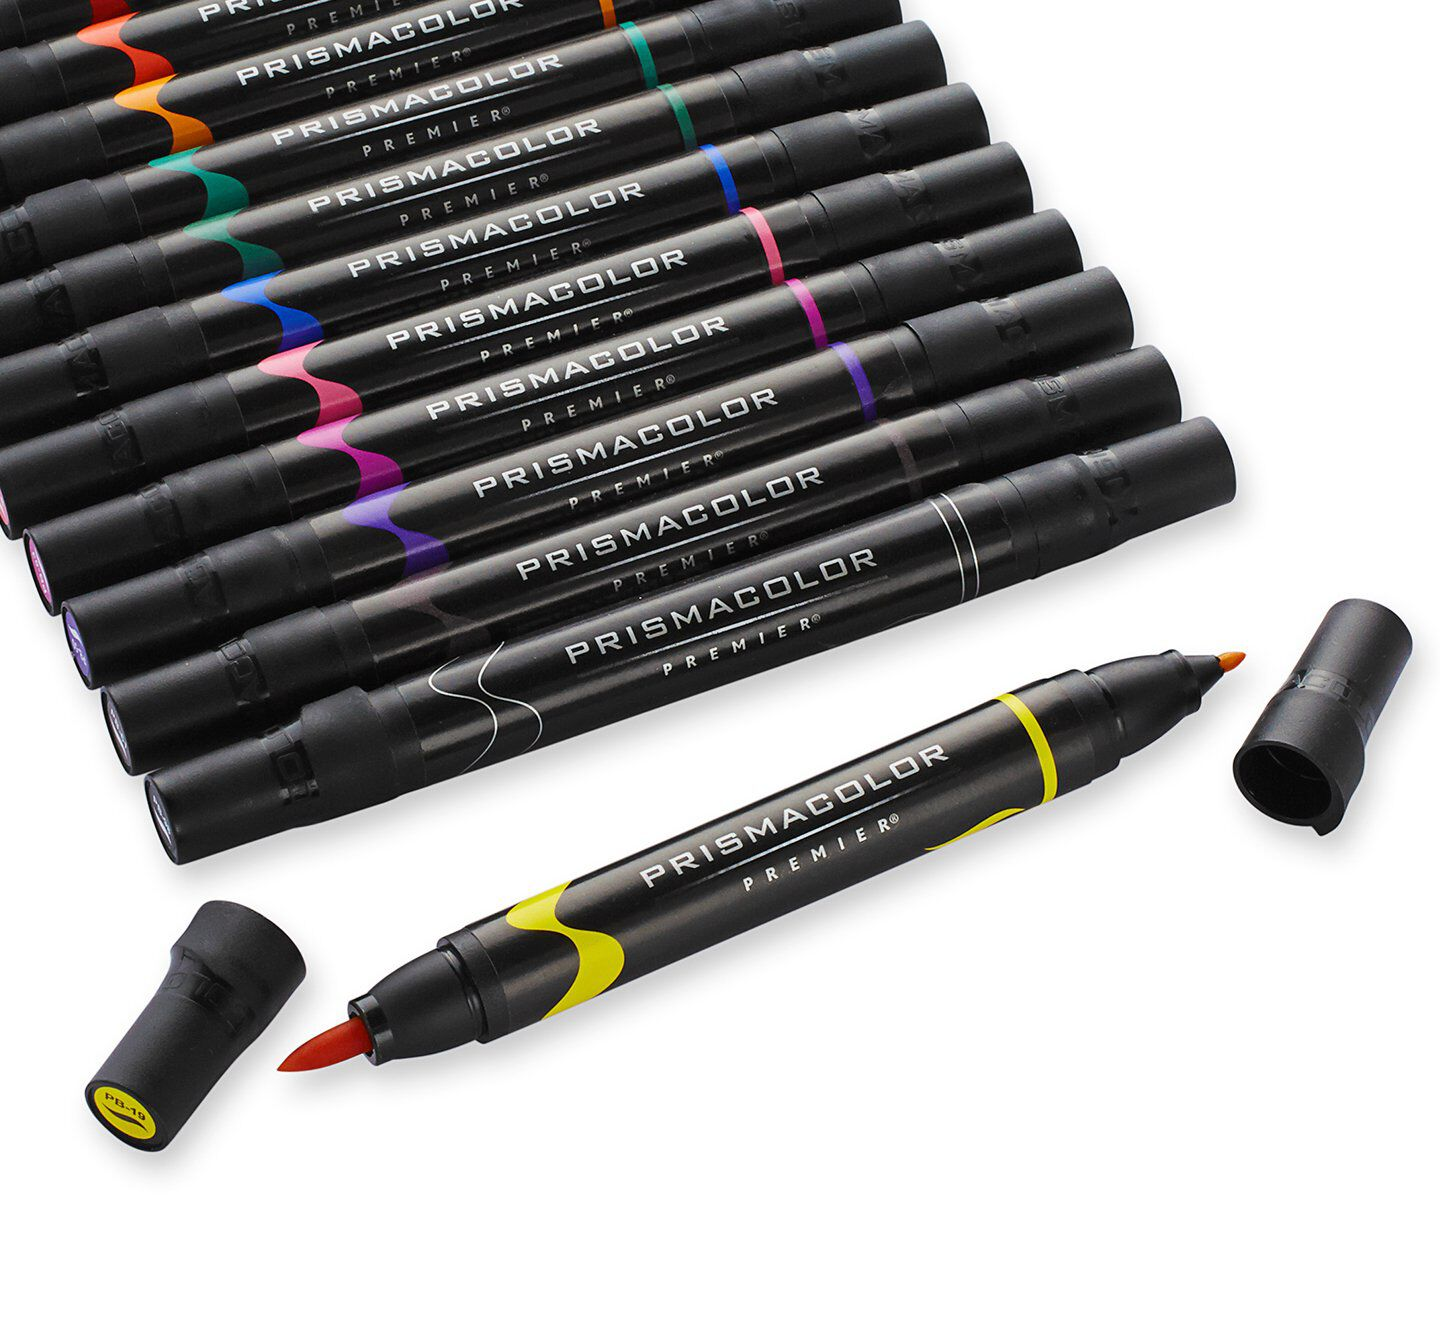 Dual-ended fine art markers